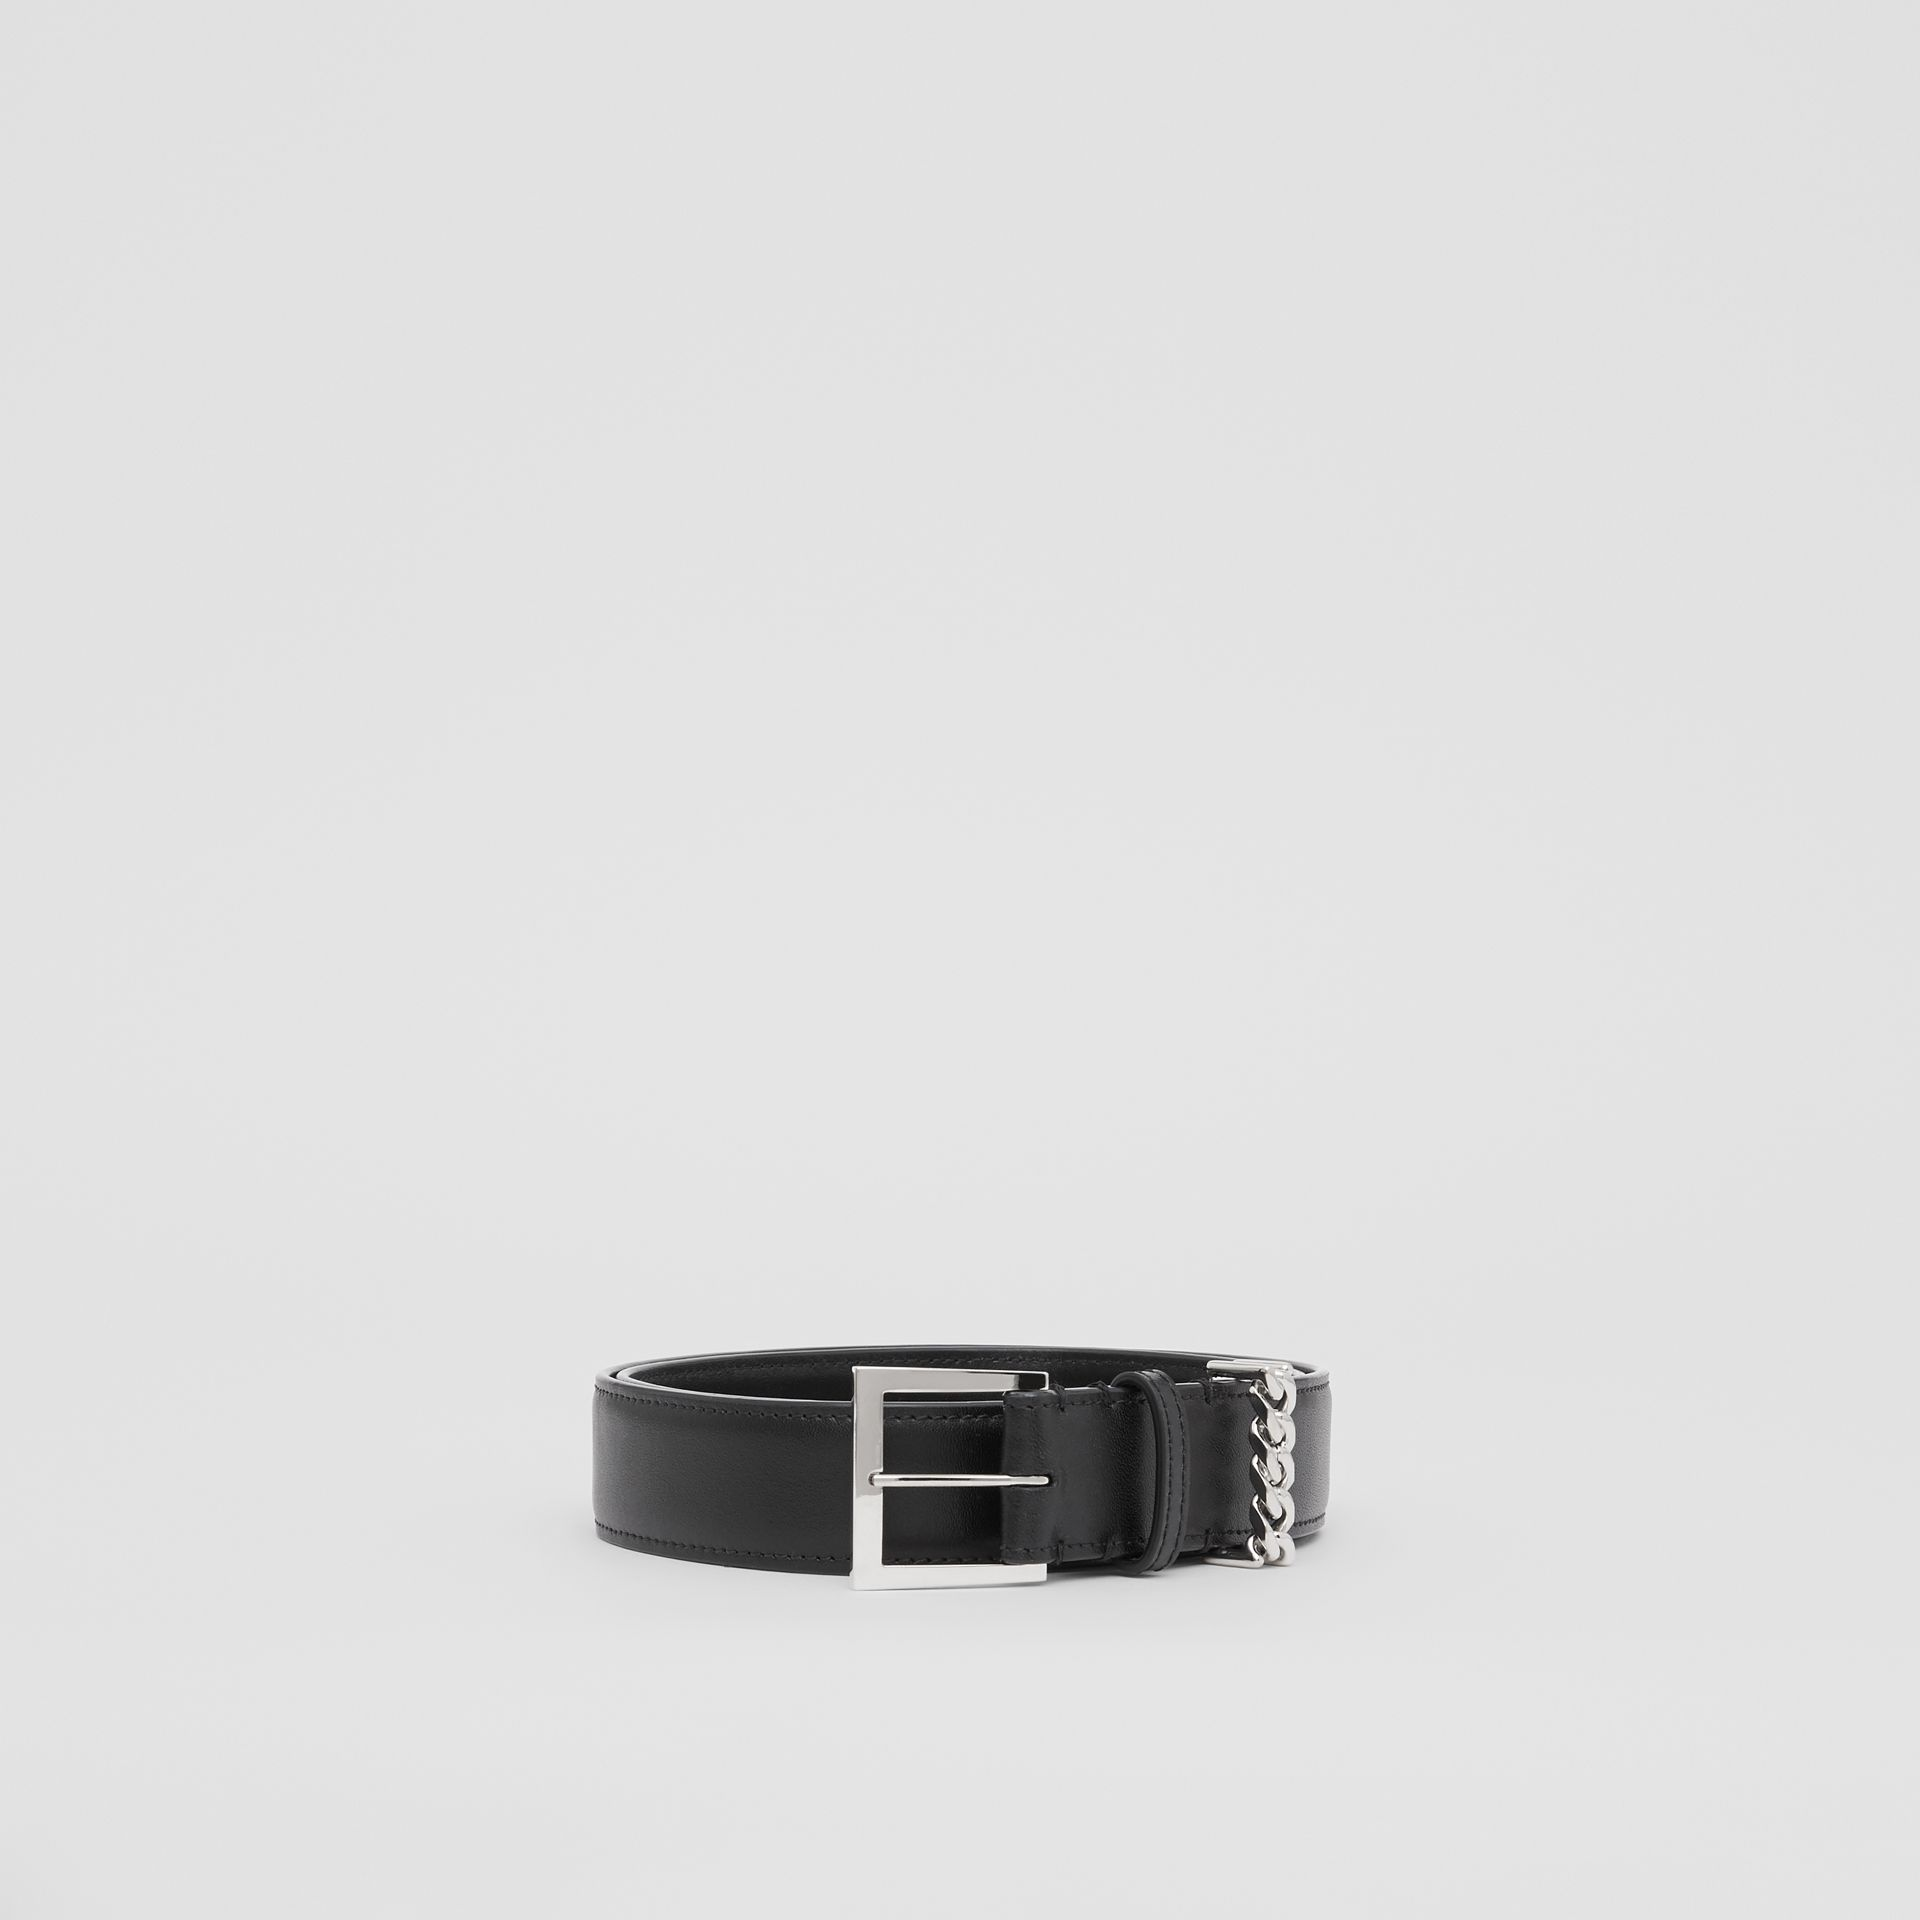 Chain Detail Leather Belt in Black/palladium - Women | Burberry United Kingdom - gallery image 3